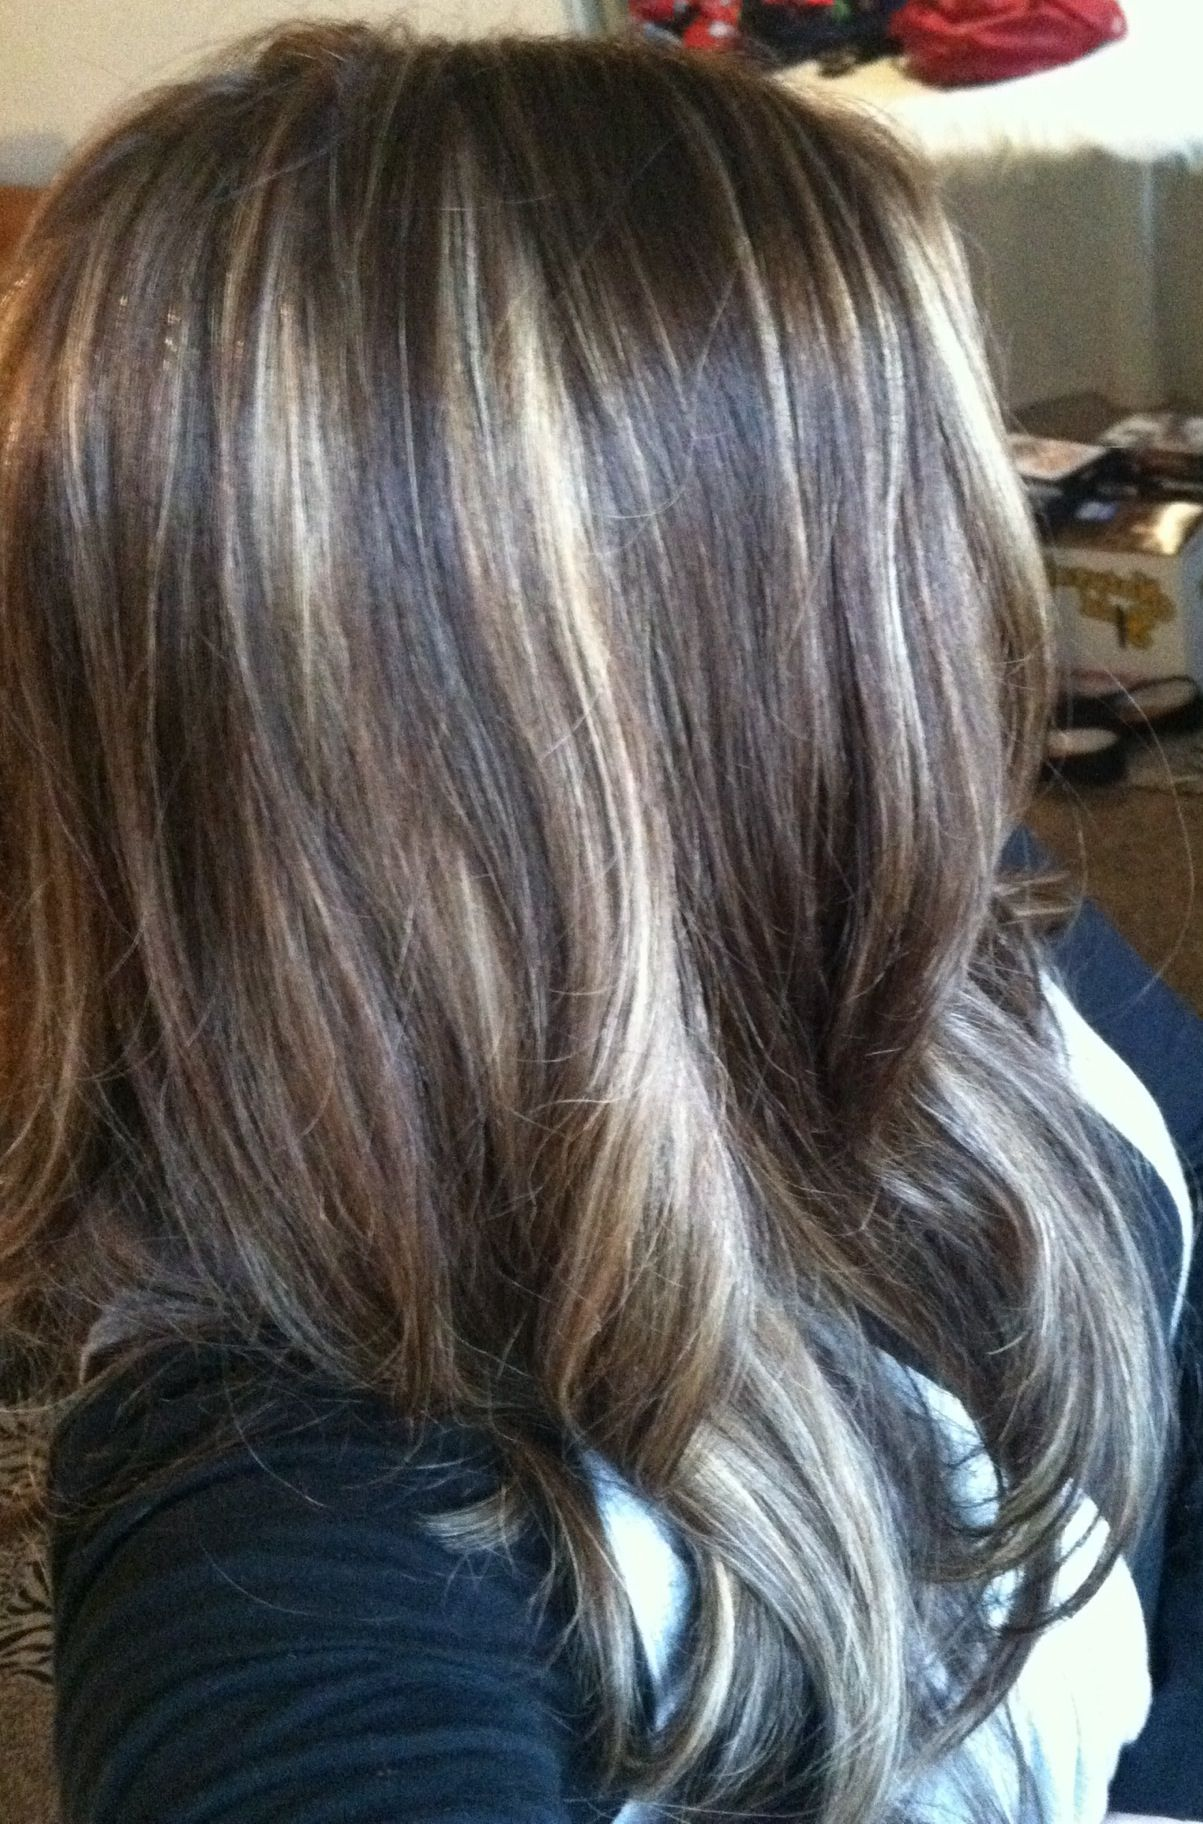 Blonde and honey partial foil highlights on brown hair